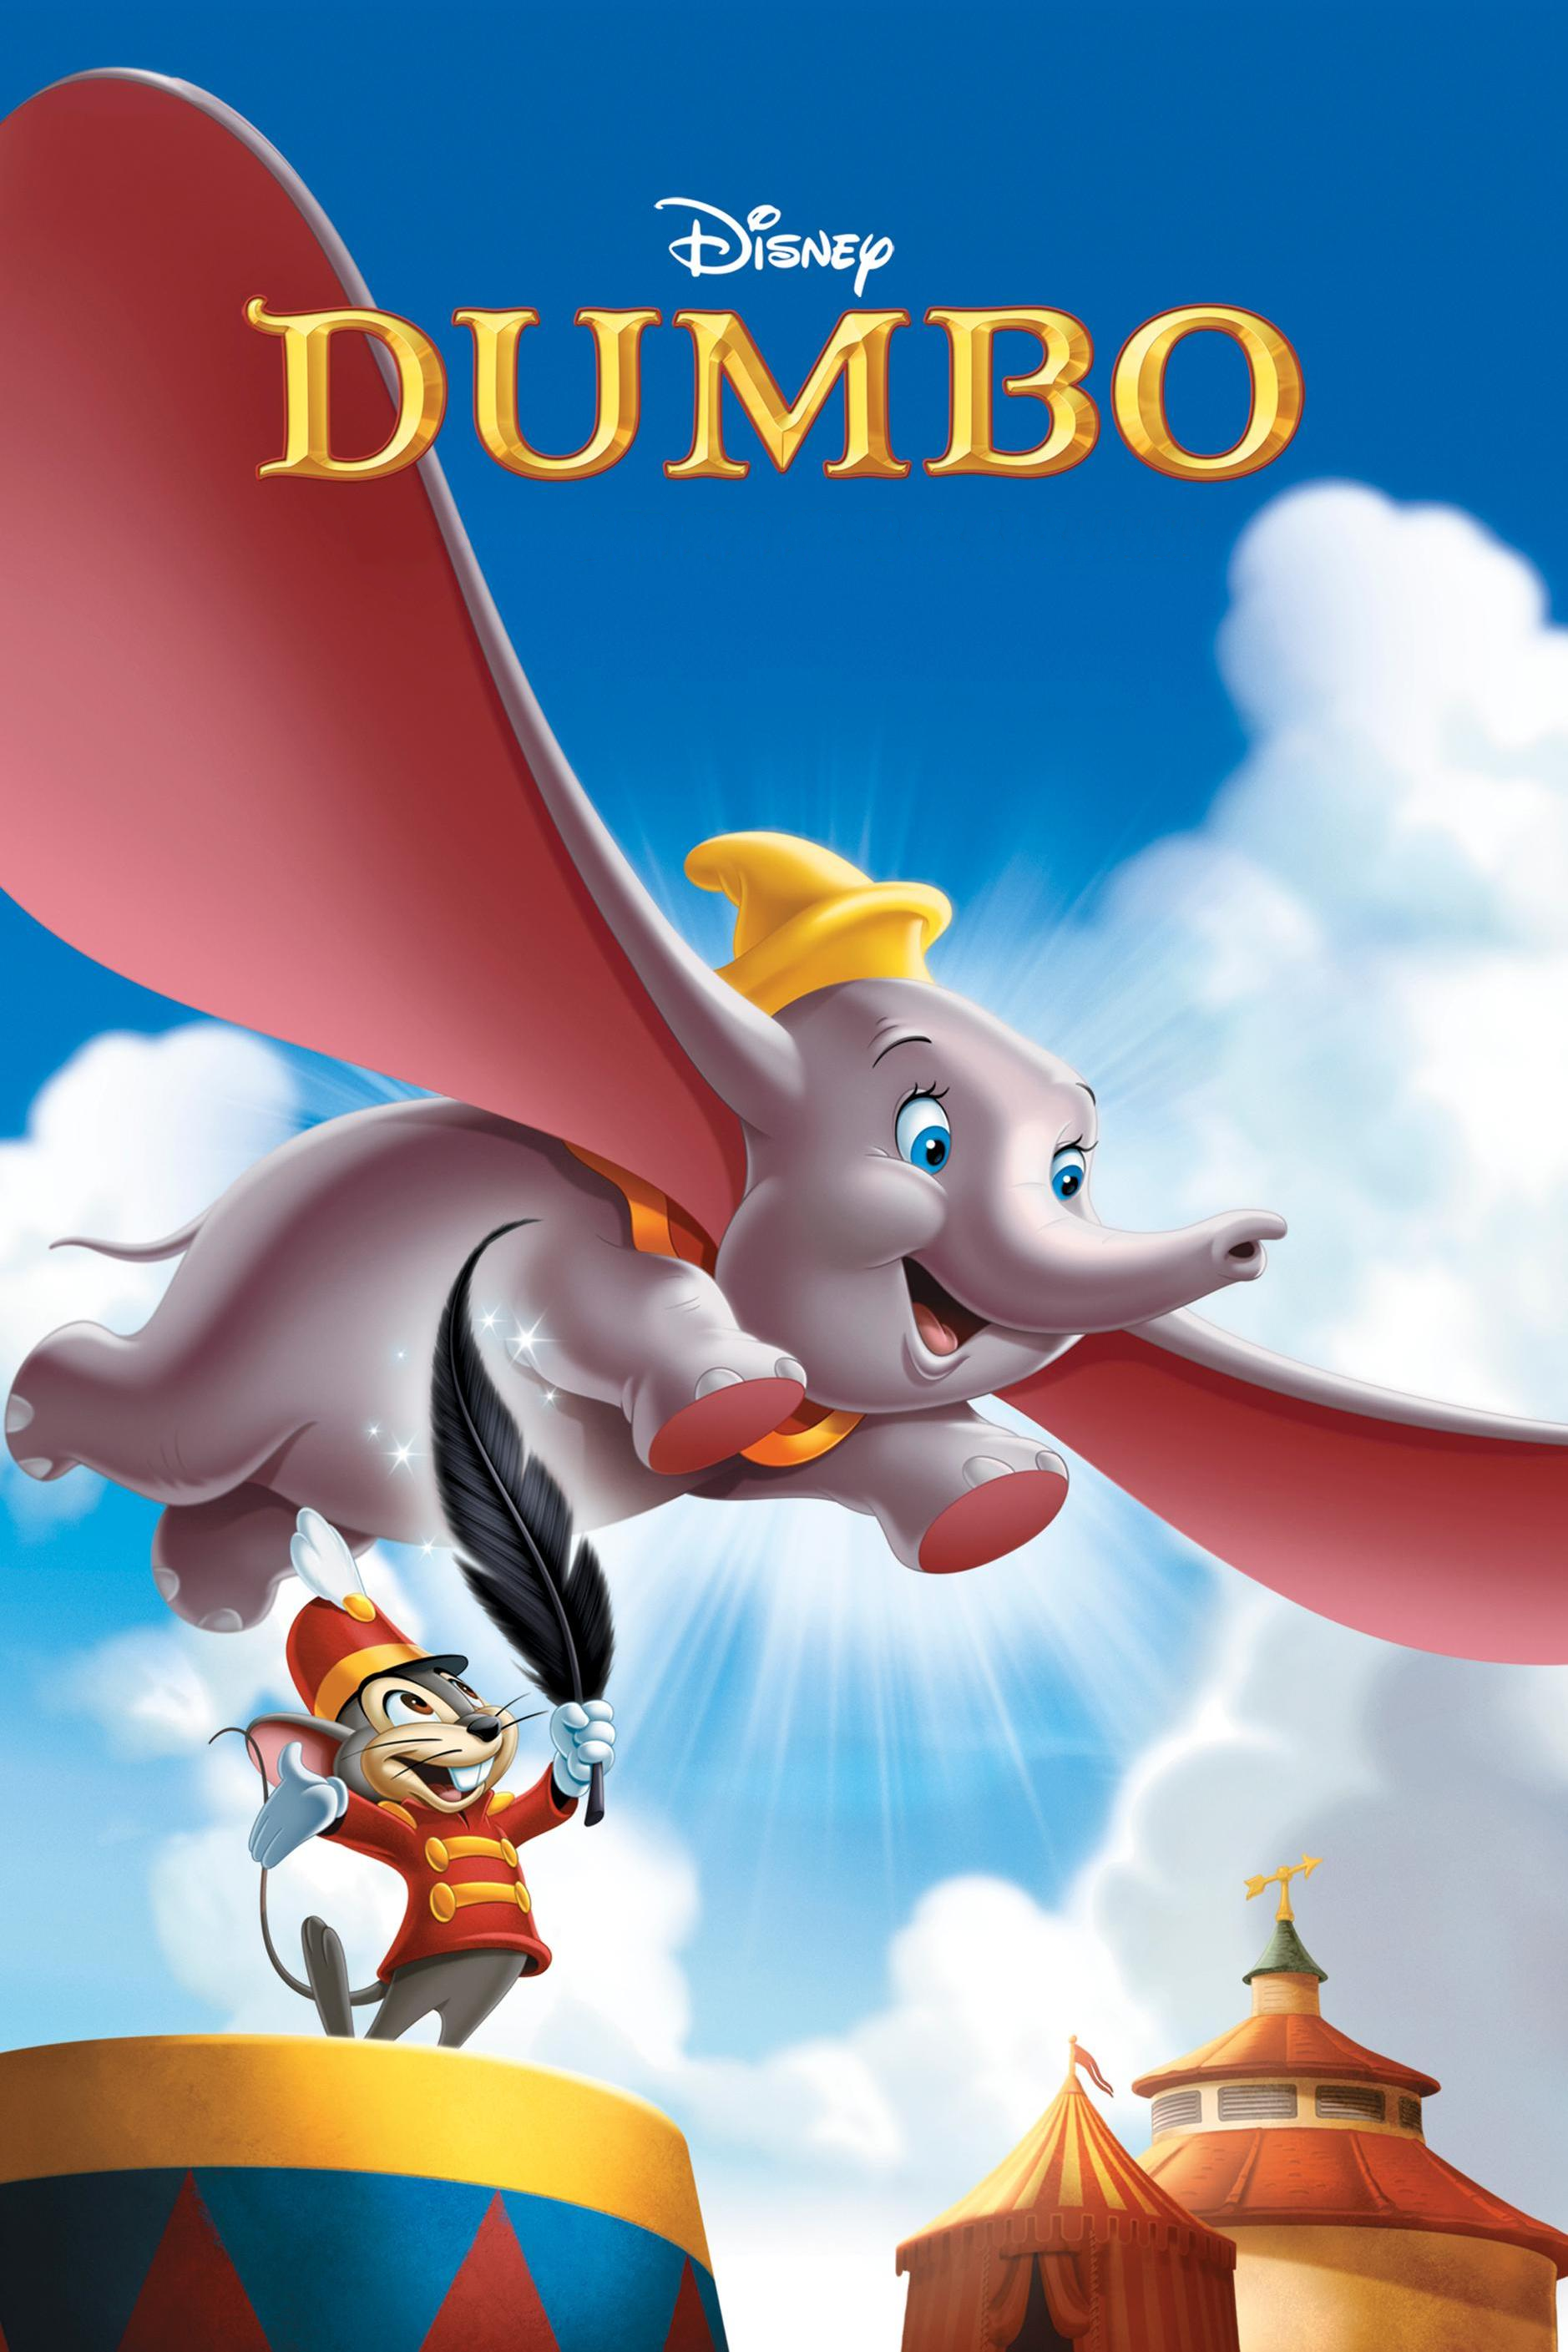 Dumbo (1941) - Directed by: Samuel ArmstrongStarring: Sterling Holloway, Edward BrophyRated: GRunning Time: 1h 4mTMM Score: 2 stars out of 5 (didn't like it)STRENGTHS: Good for its dayWEAKNESSES: It's not 1941 anymore